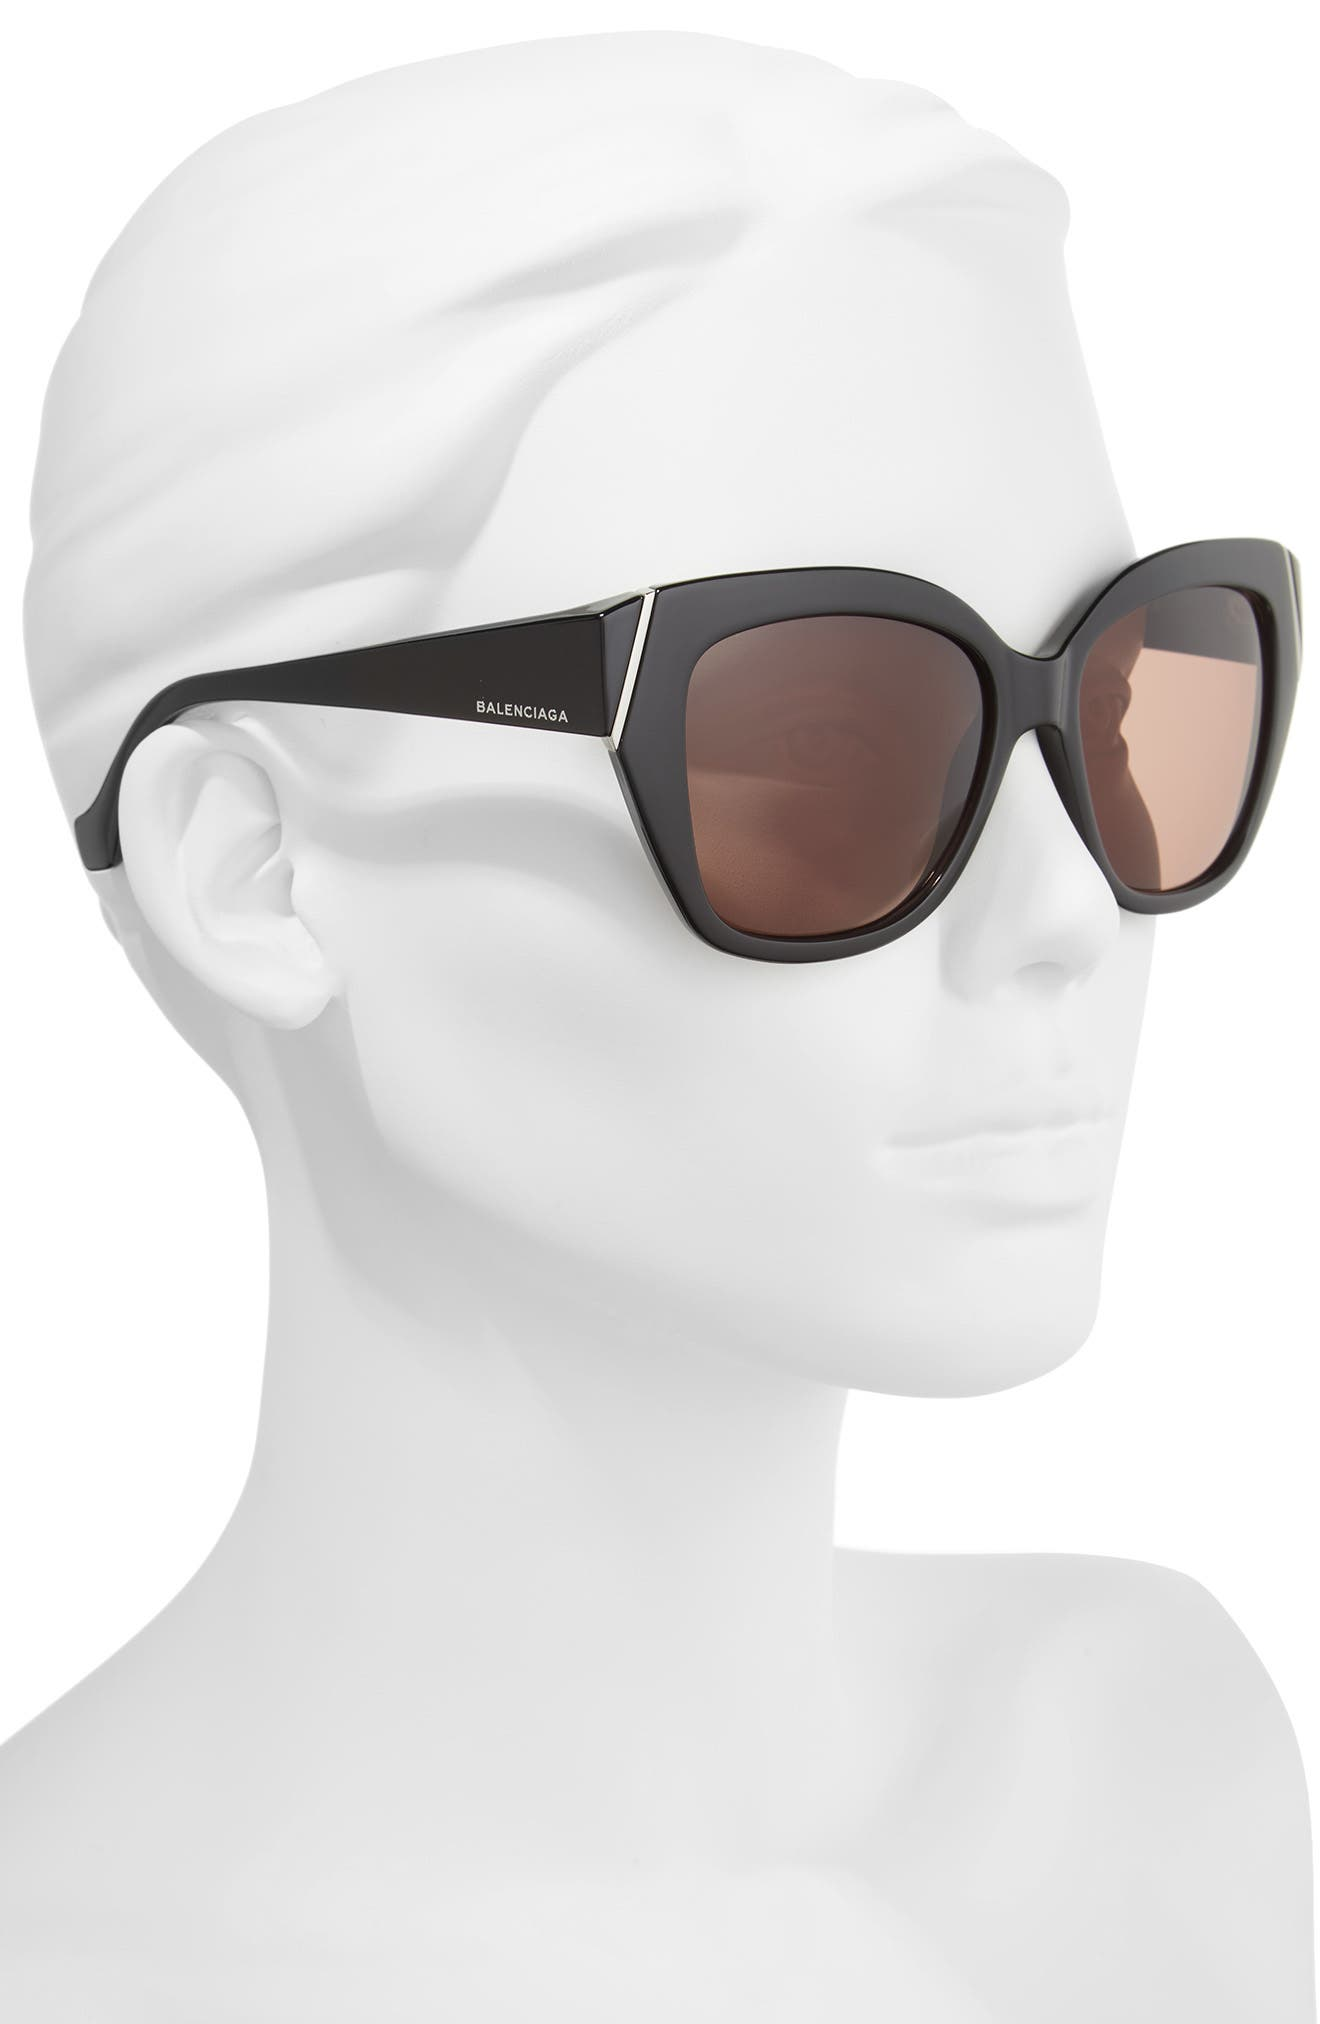 57mm Cat Eye Sunglasses,                             Alternate thumbnail 2, color,                             001